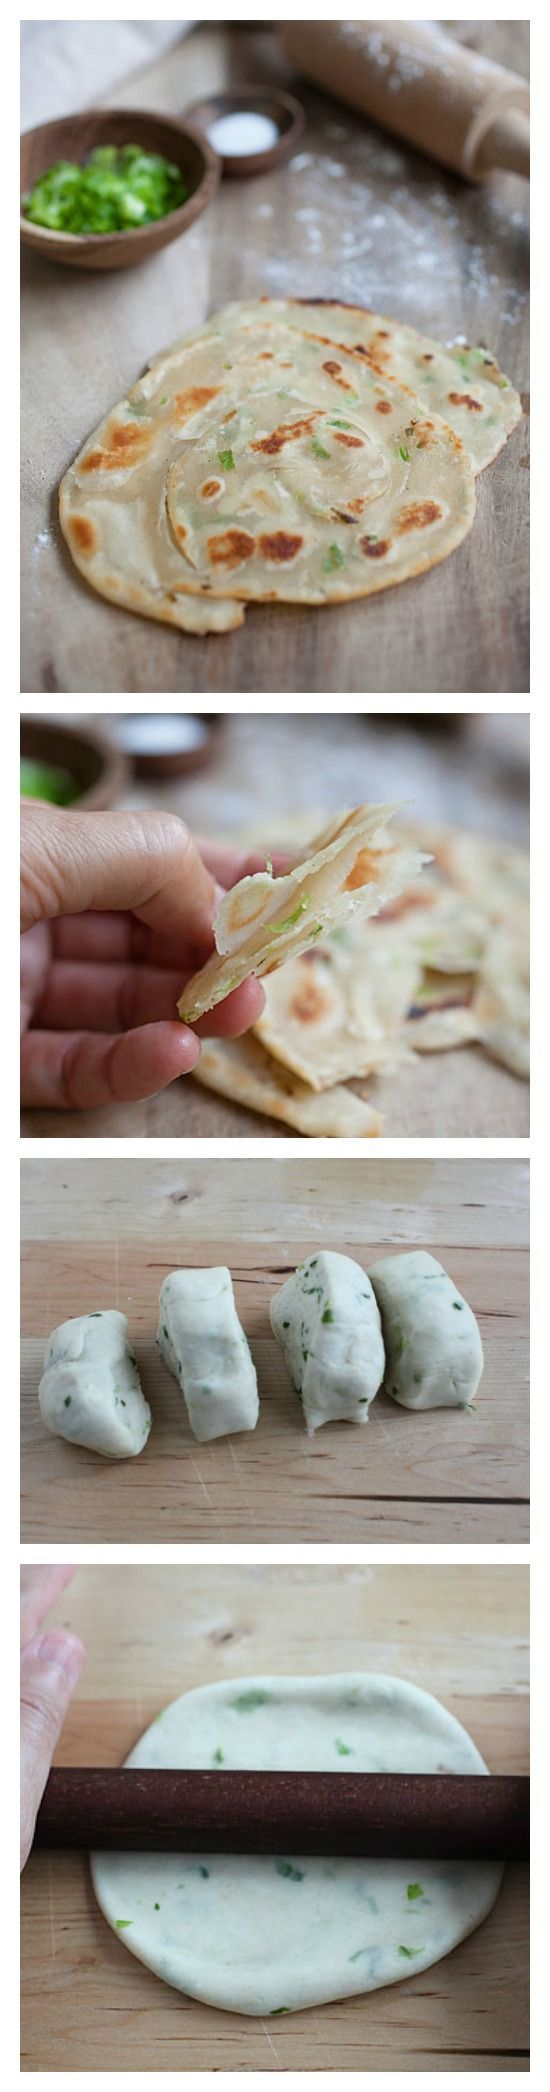 Scallion Pancake Recipe. 3 ingredients and so easy to make. Scallion pancake is healthy and delicious, make it today   rasamalaysia.com